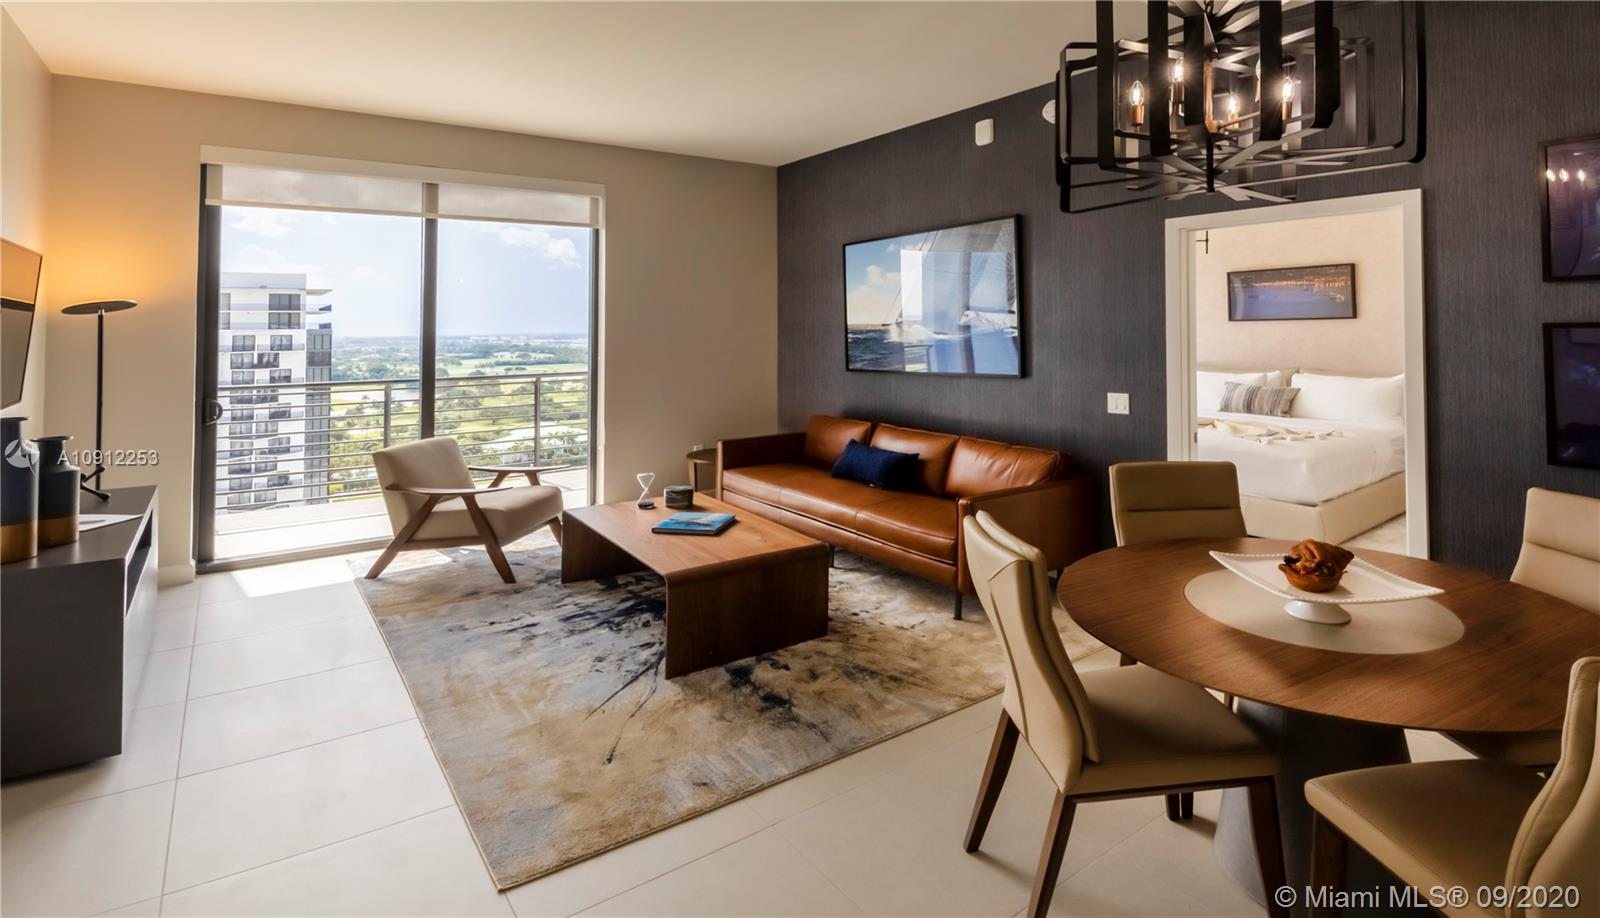 5350 NW 84th Ave #2010 For Sale A10912253, FL